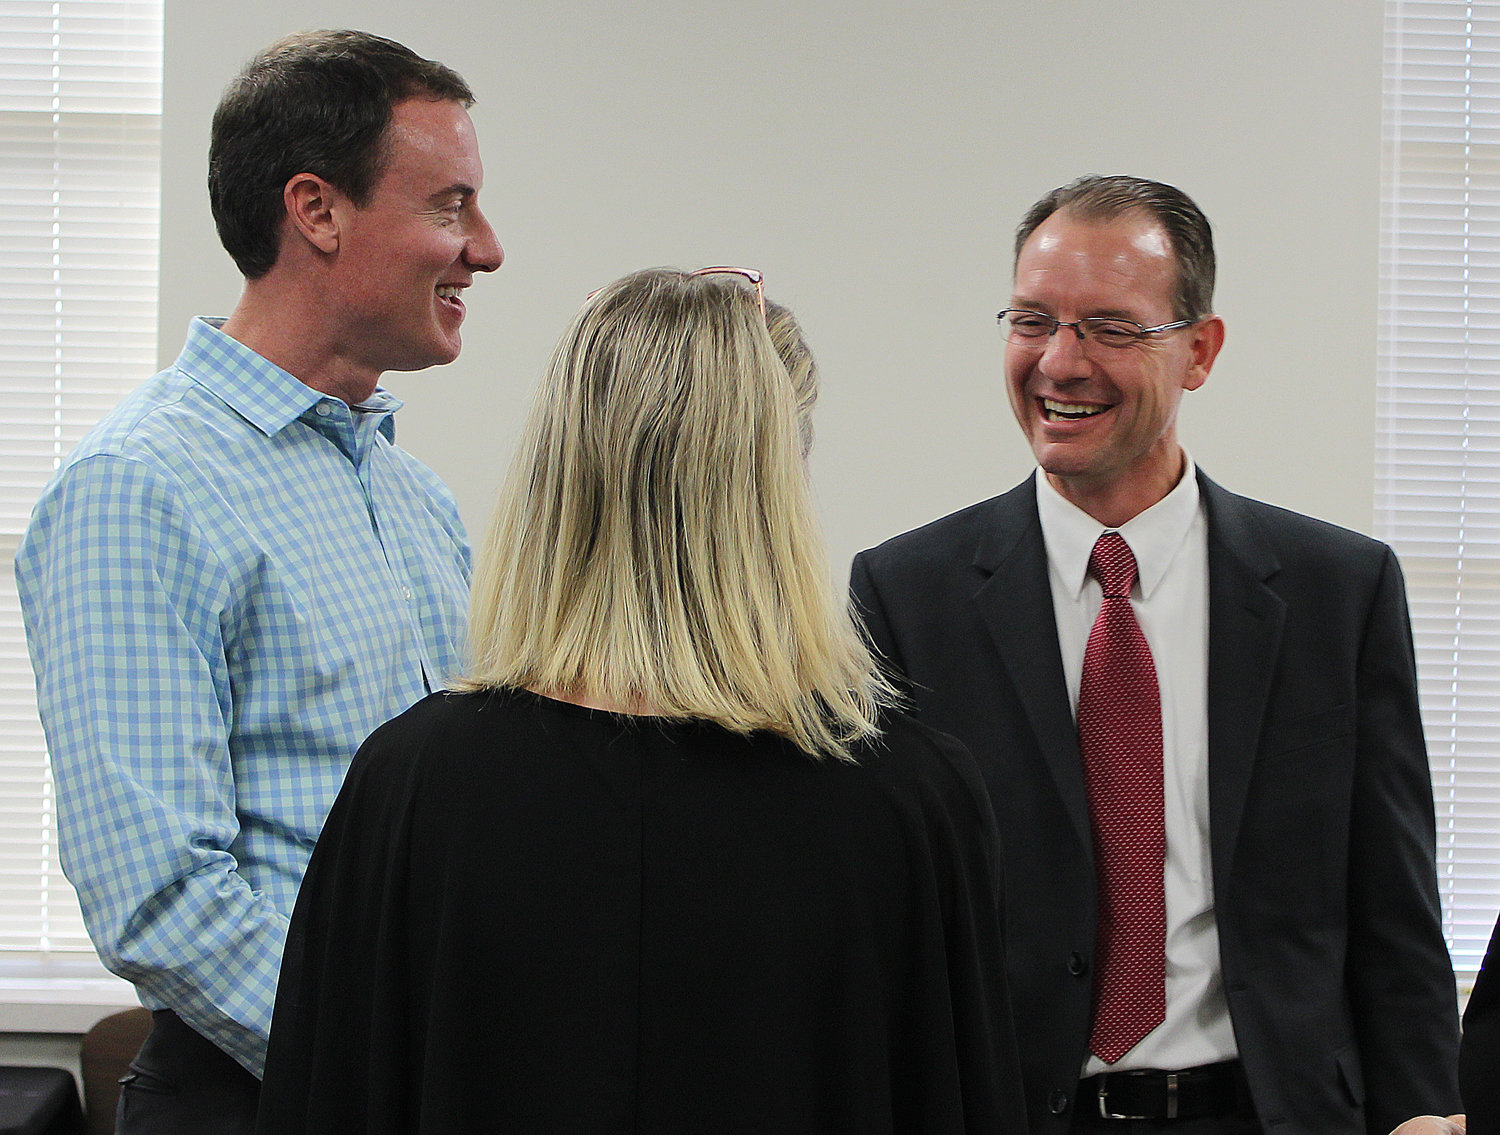 Dripping Springs ISD superintendent Bruce Gearing greets local parents after being named the finalist for the Leander ISD Superintendent position.